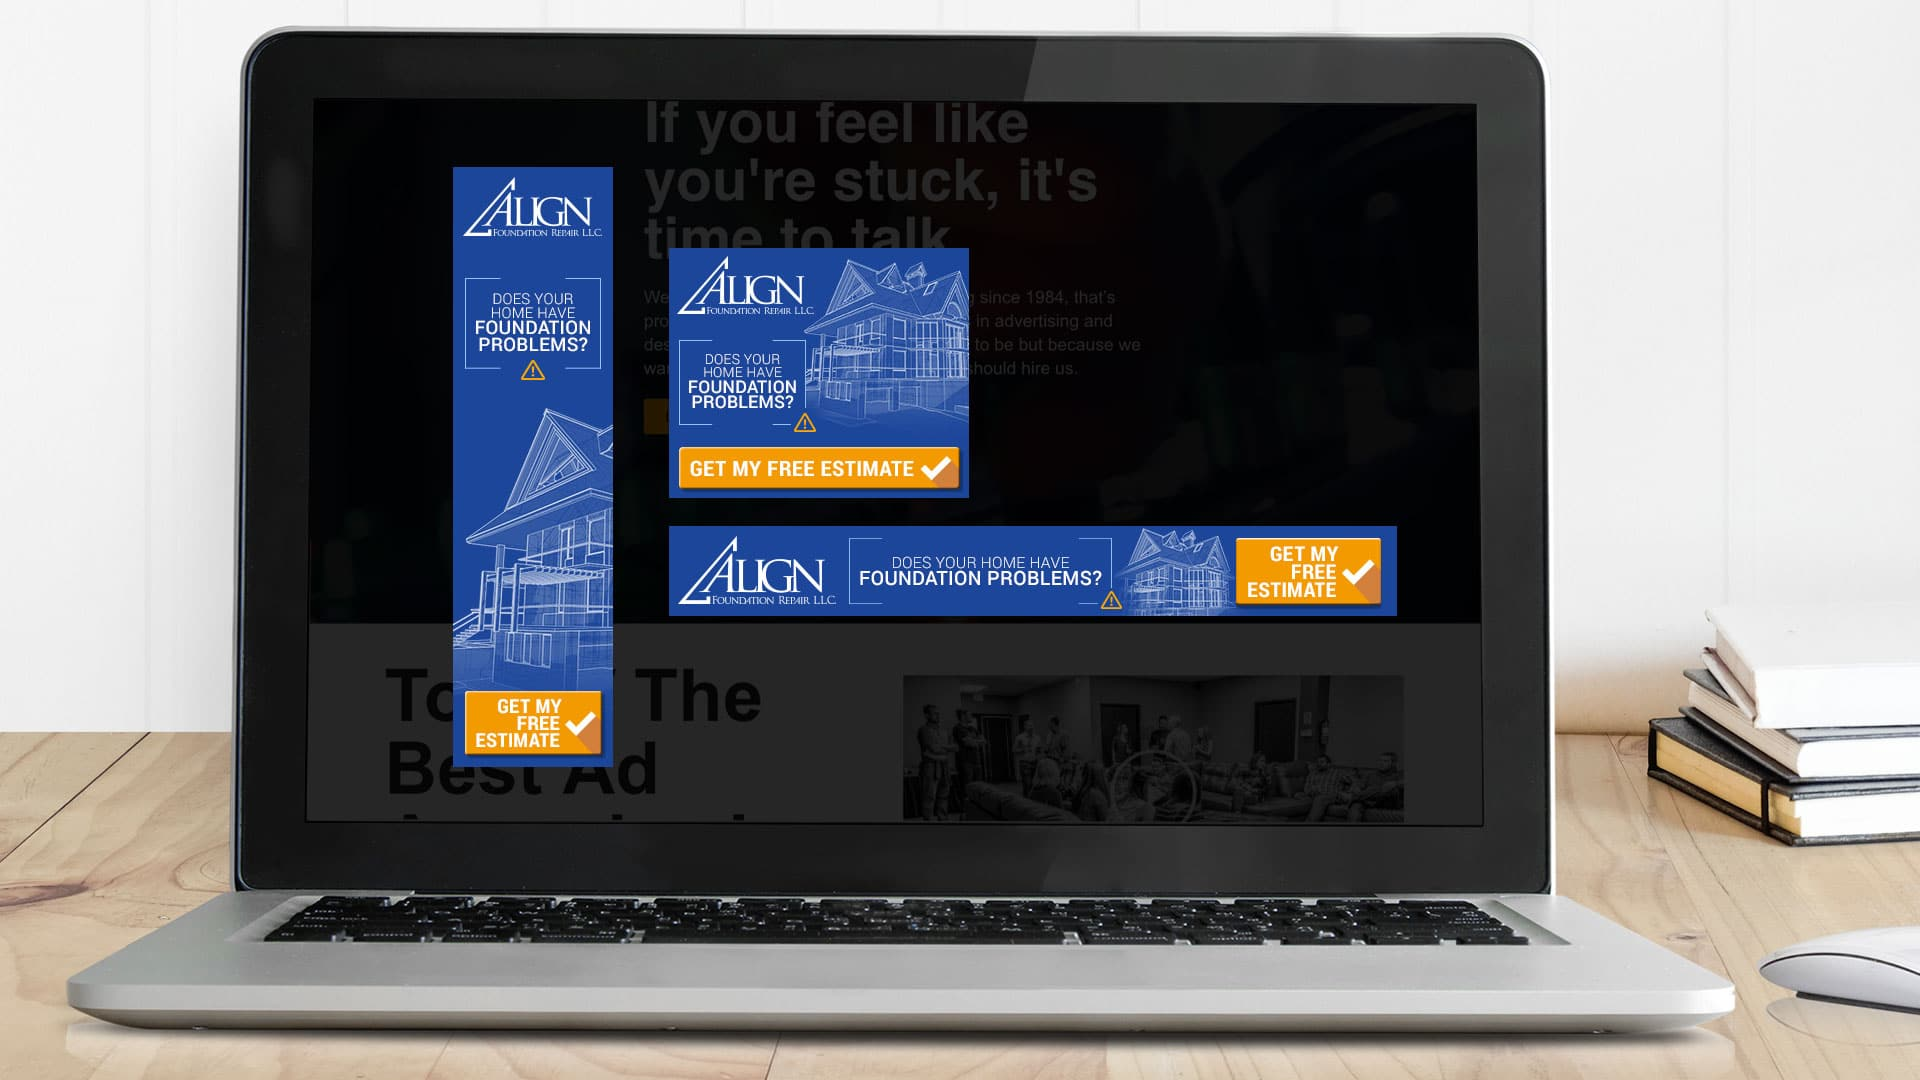 Web Banners: Align